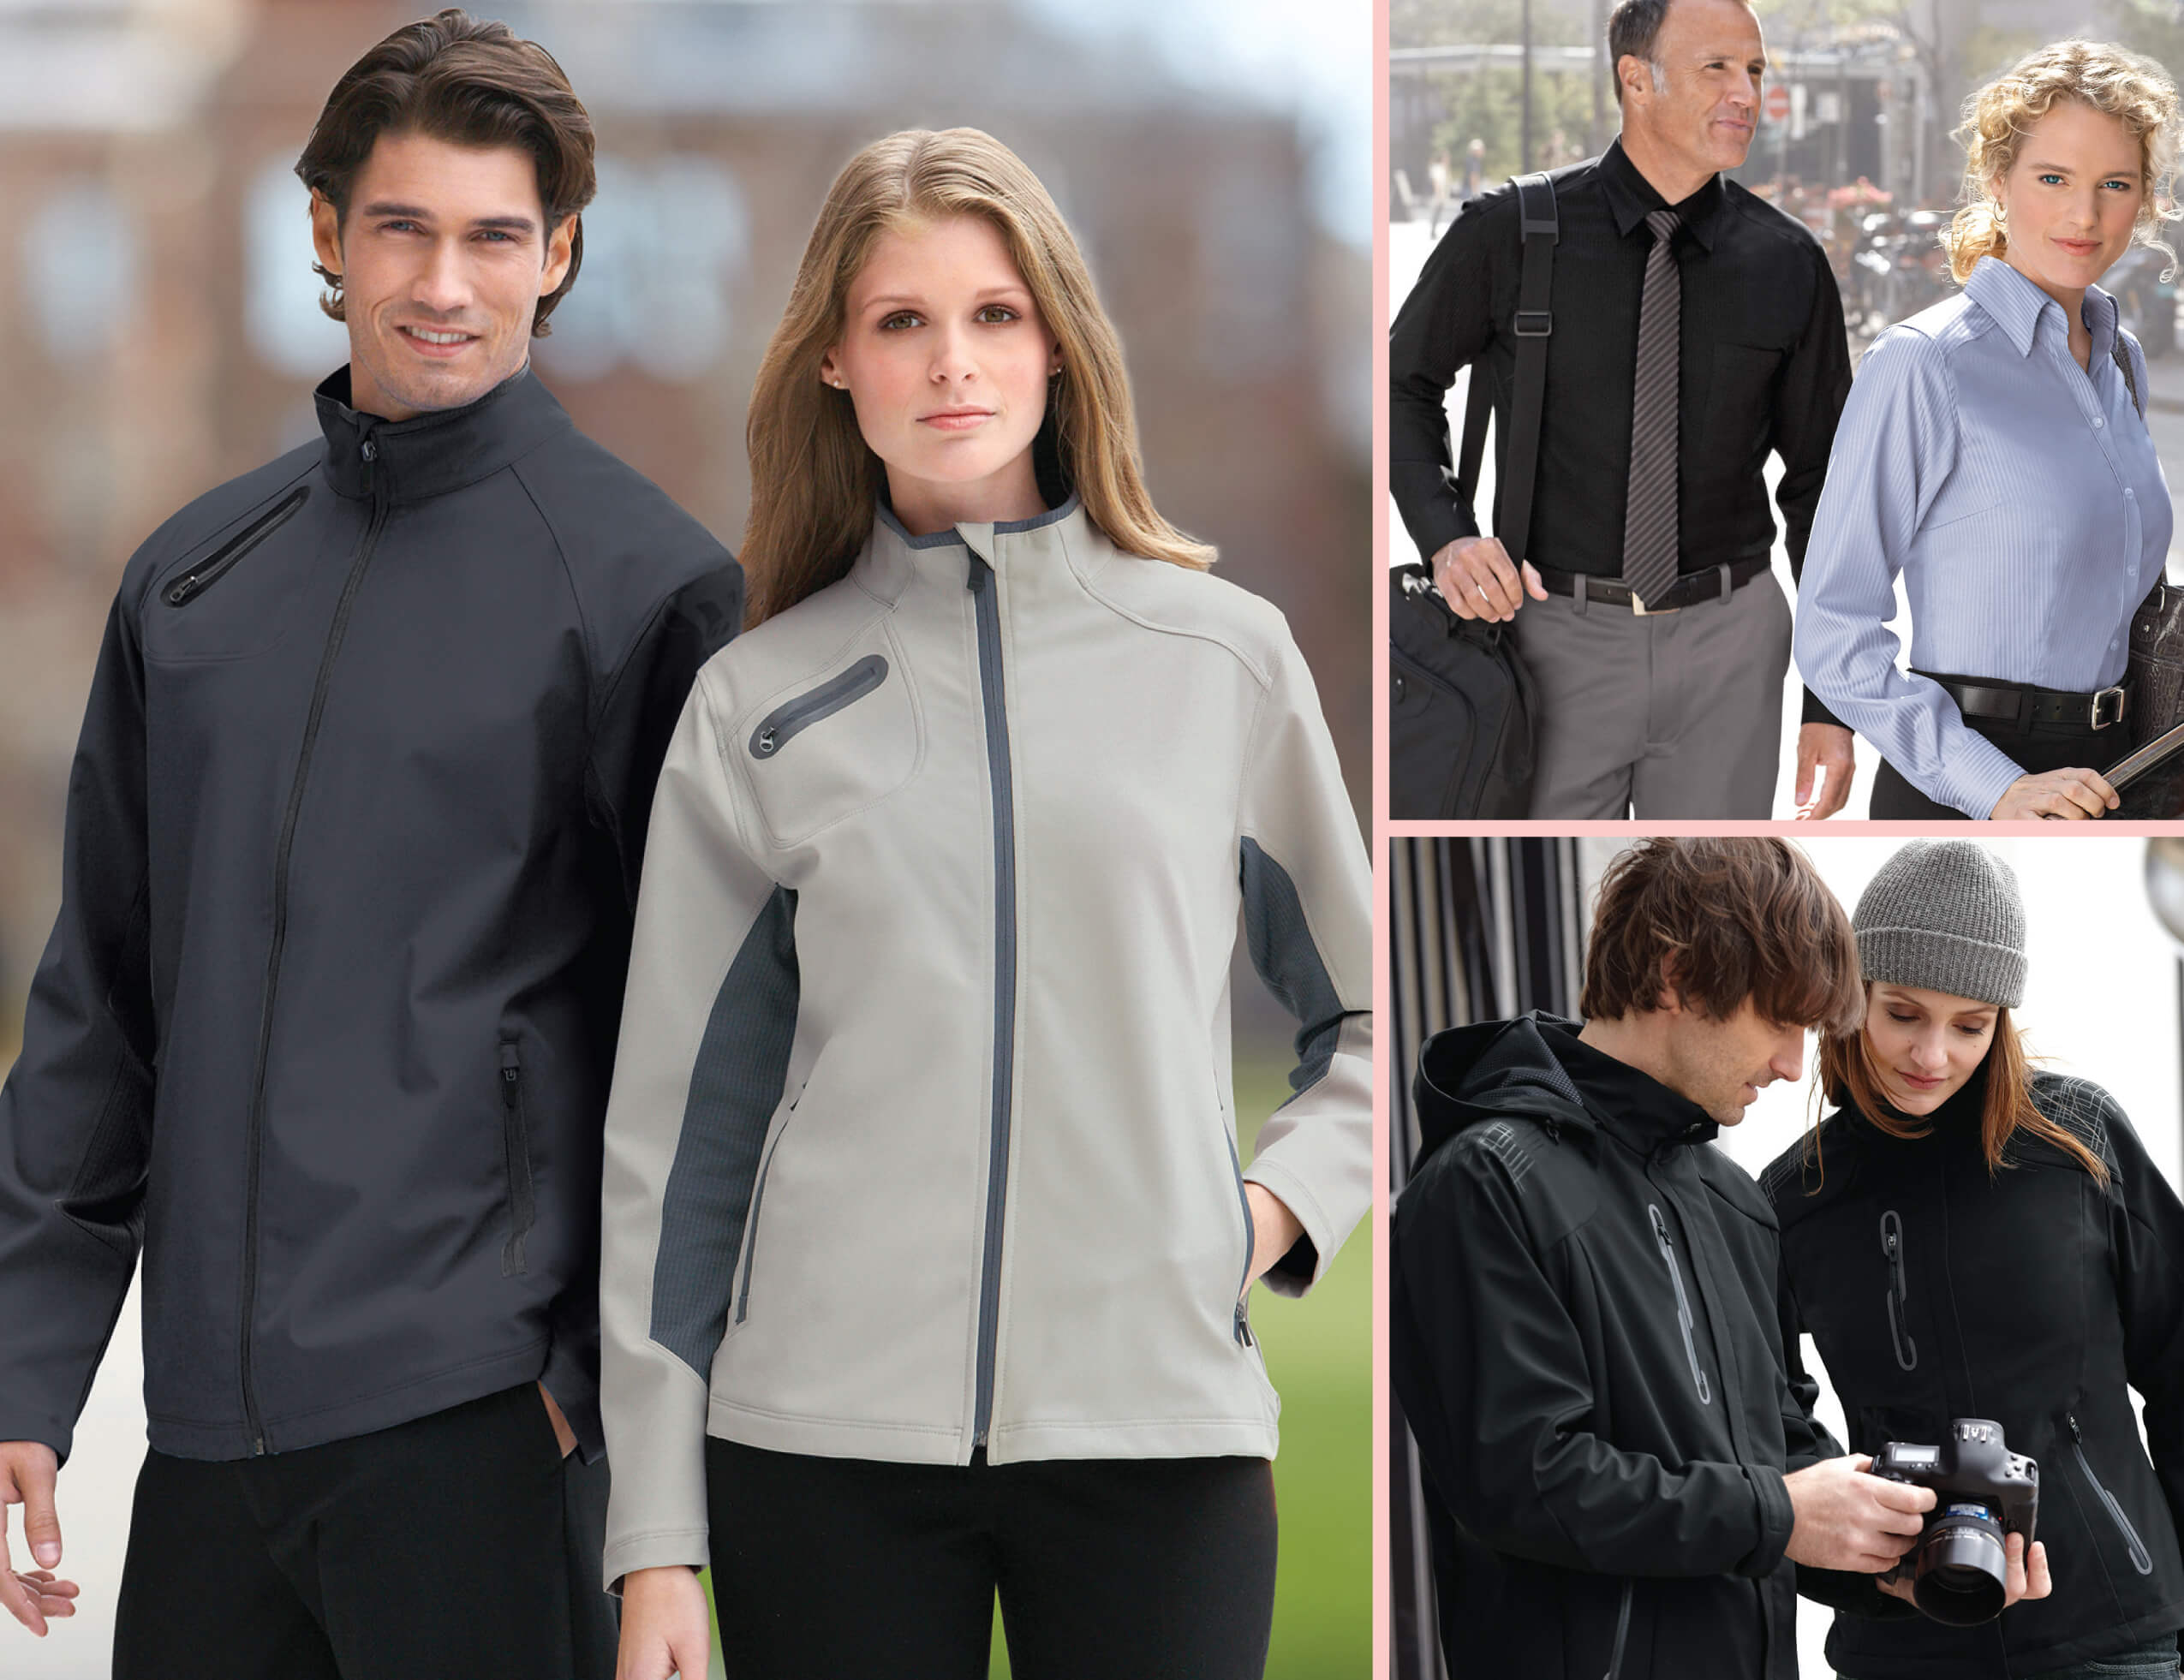 men and women modelling windbreakers